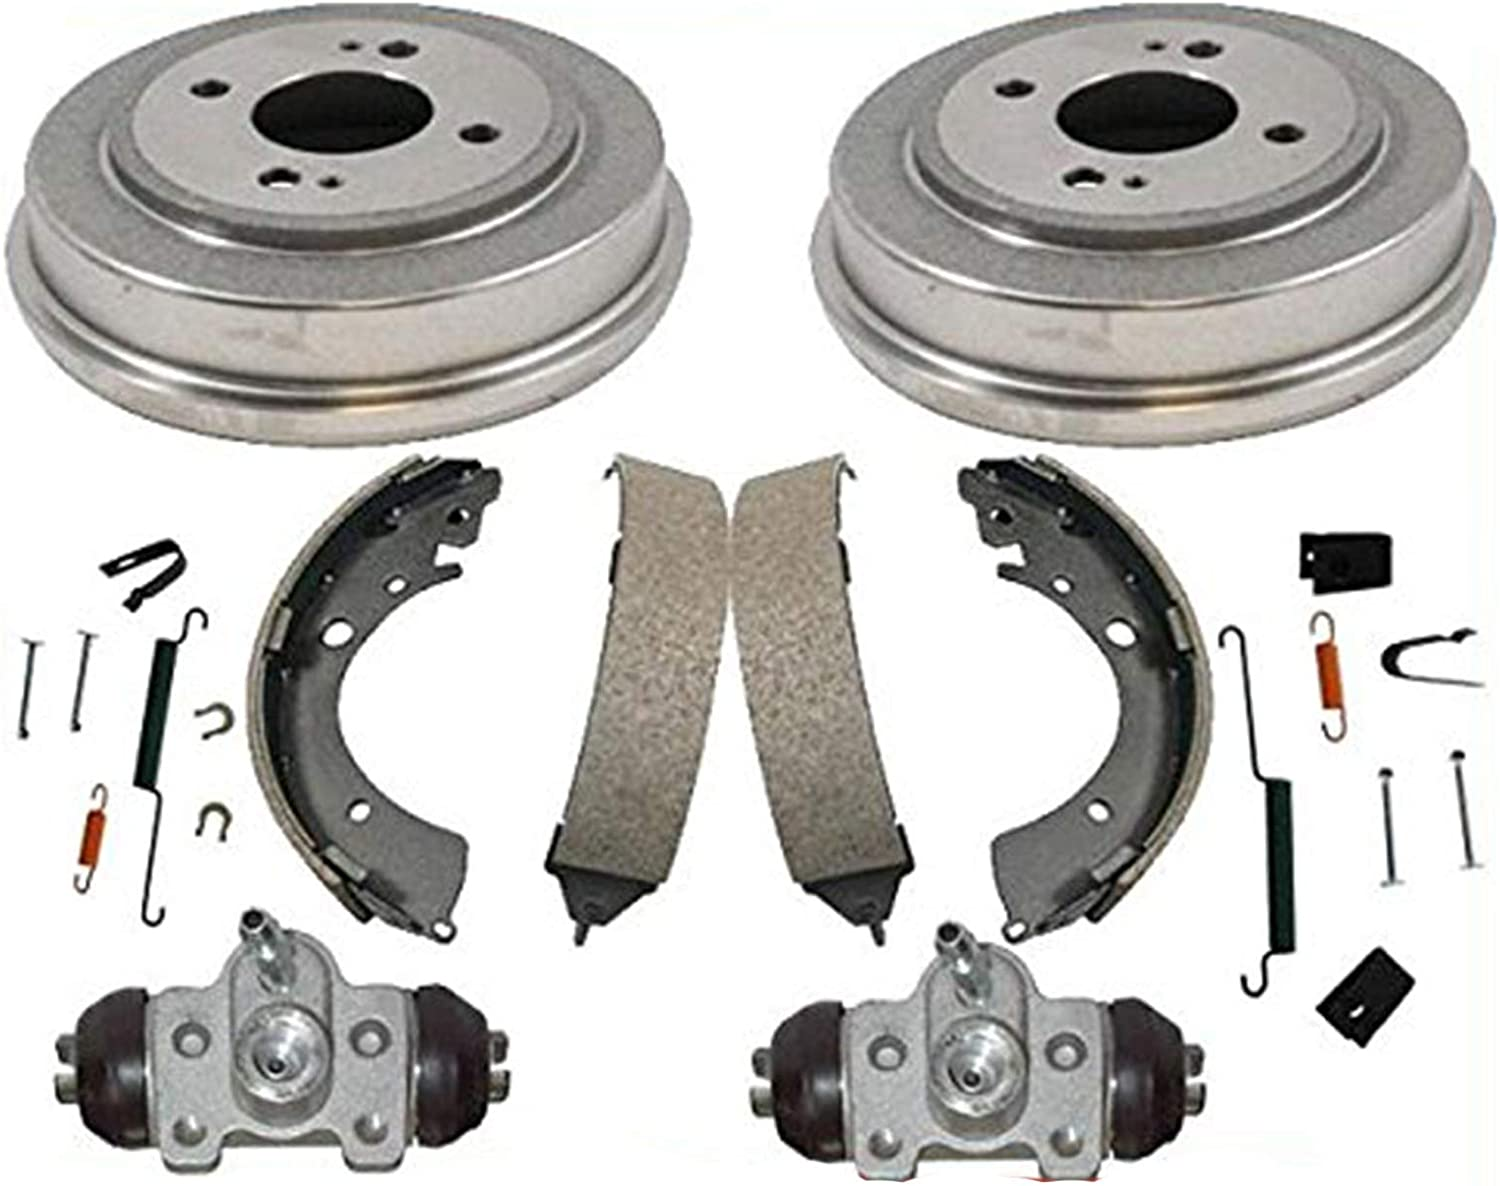 Complete Front /& Rear Brake Line Replacement Kit 92-95 Honda Civic w//rear drum